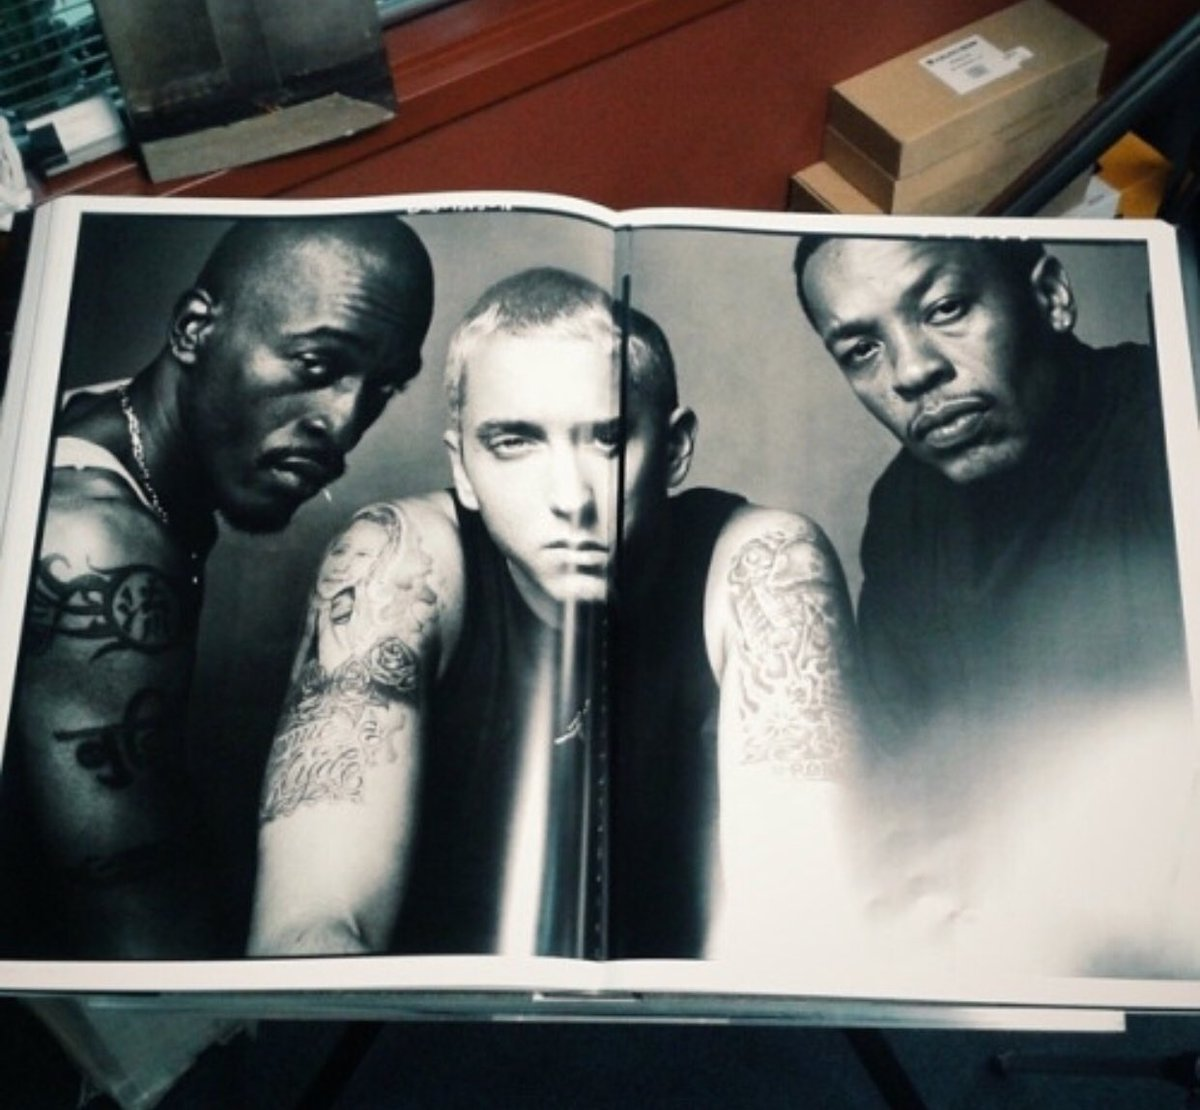 In 2002, photographer Annie Leibovitz wanted to do a photo of Eminem for the Vanity Fair music issue. She thought it would be historic to add Dr. Dre & Rakim: three generations of hip hop.   The photo shoot took place at Jimmy Iovine's home in Los Angeles on May 31, 2002. <br>http://pic.twitter.com/zhKu1RP0Hm